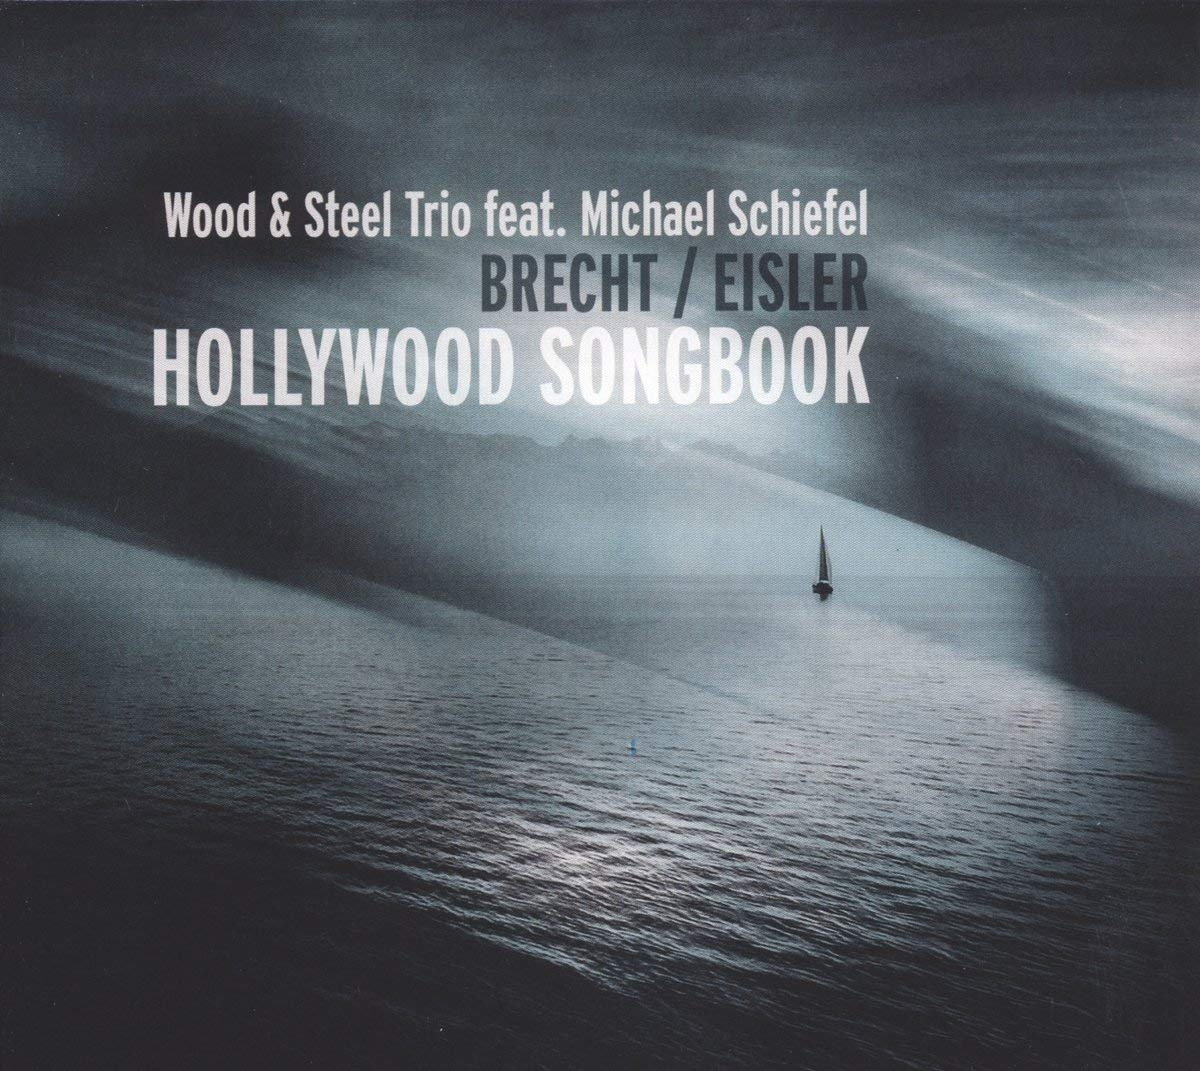 jazz 10 18 Wood Schiefel